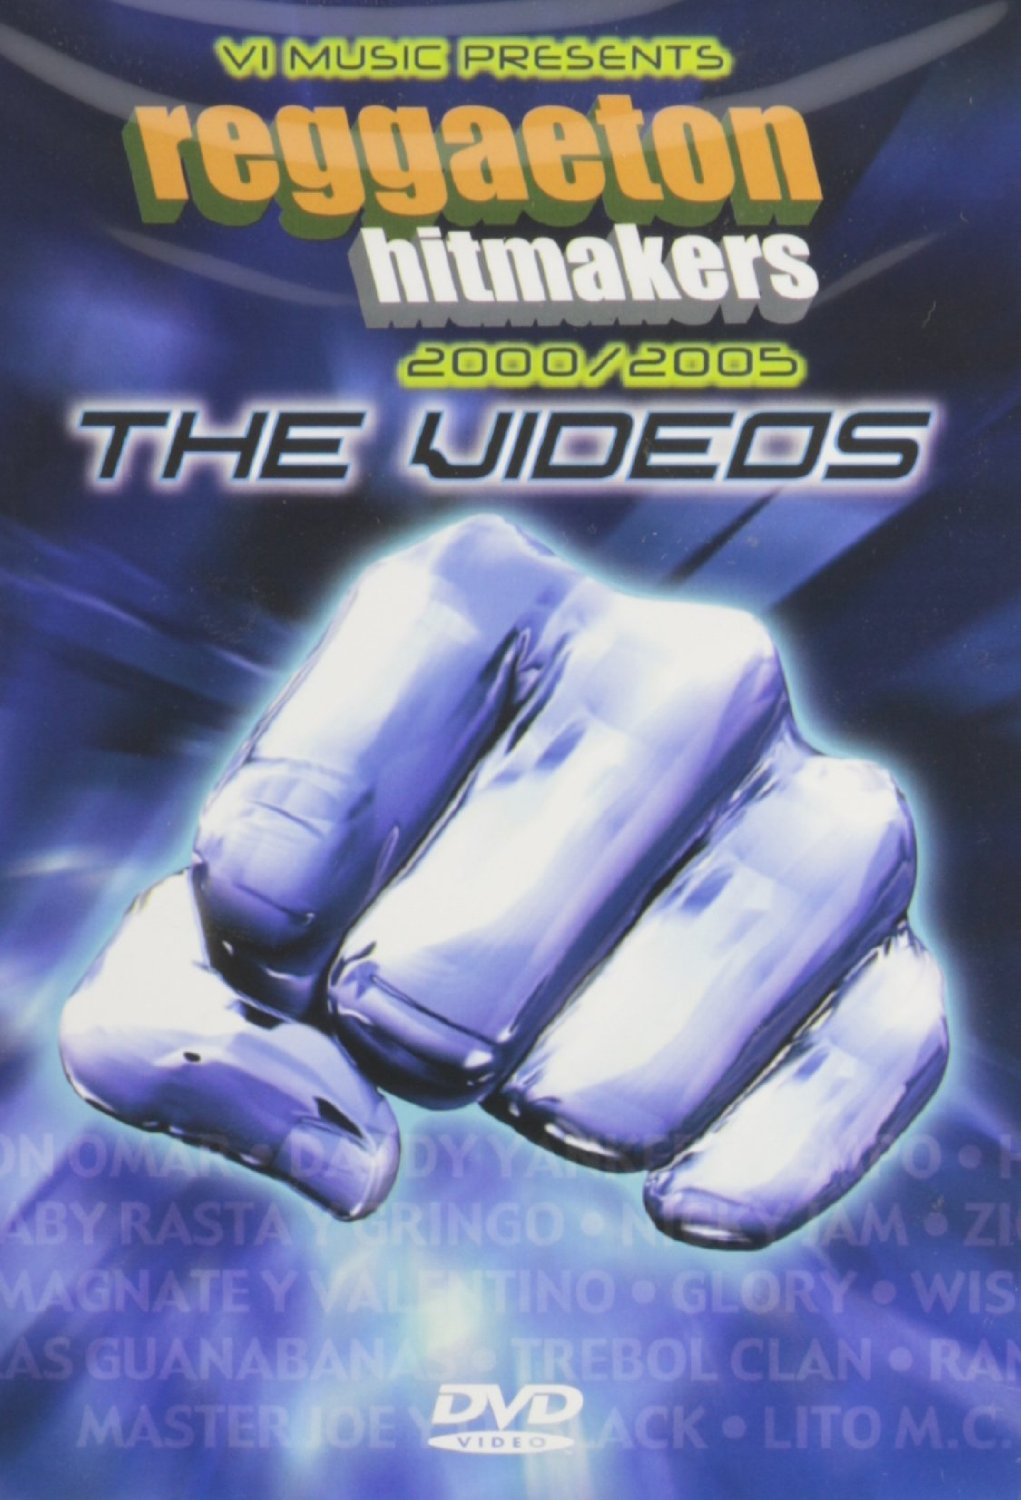 REGGAETON HITMAKERS - VARIOS INTERPRETES DVD - DVD